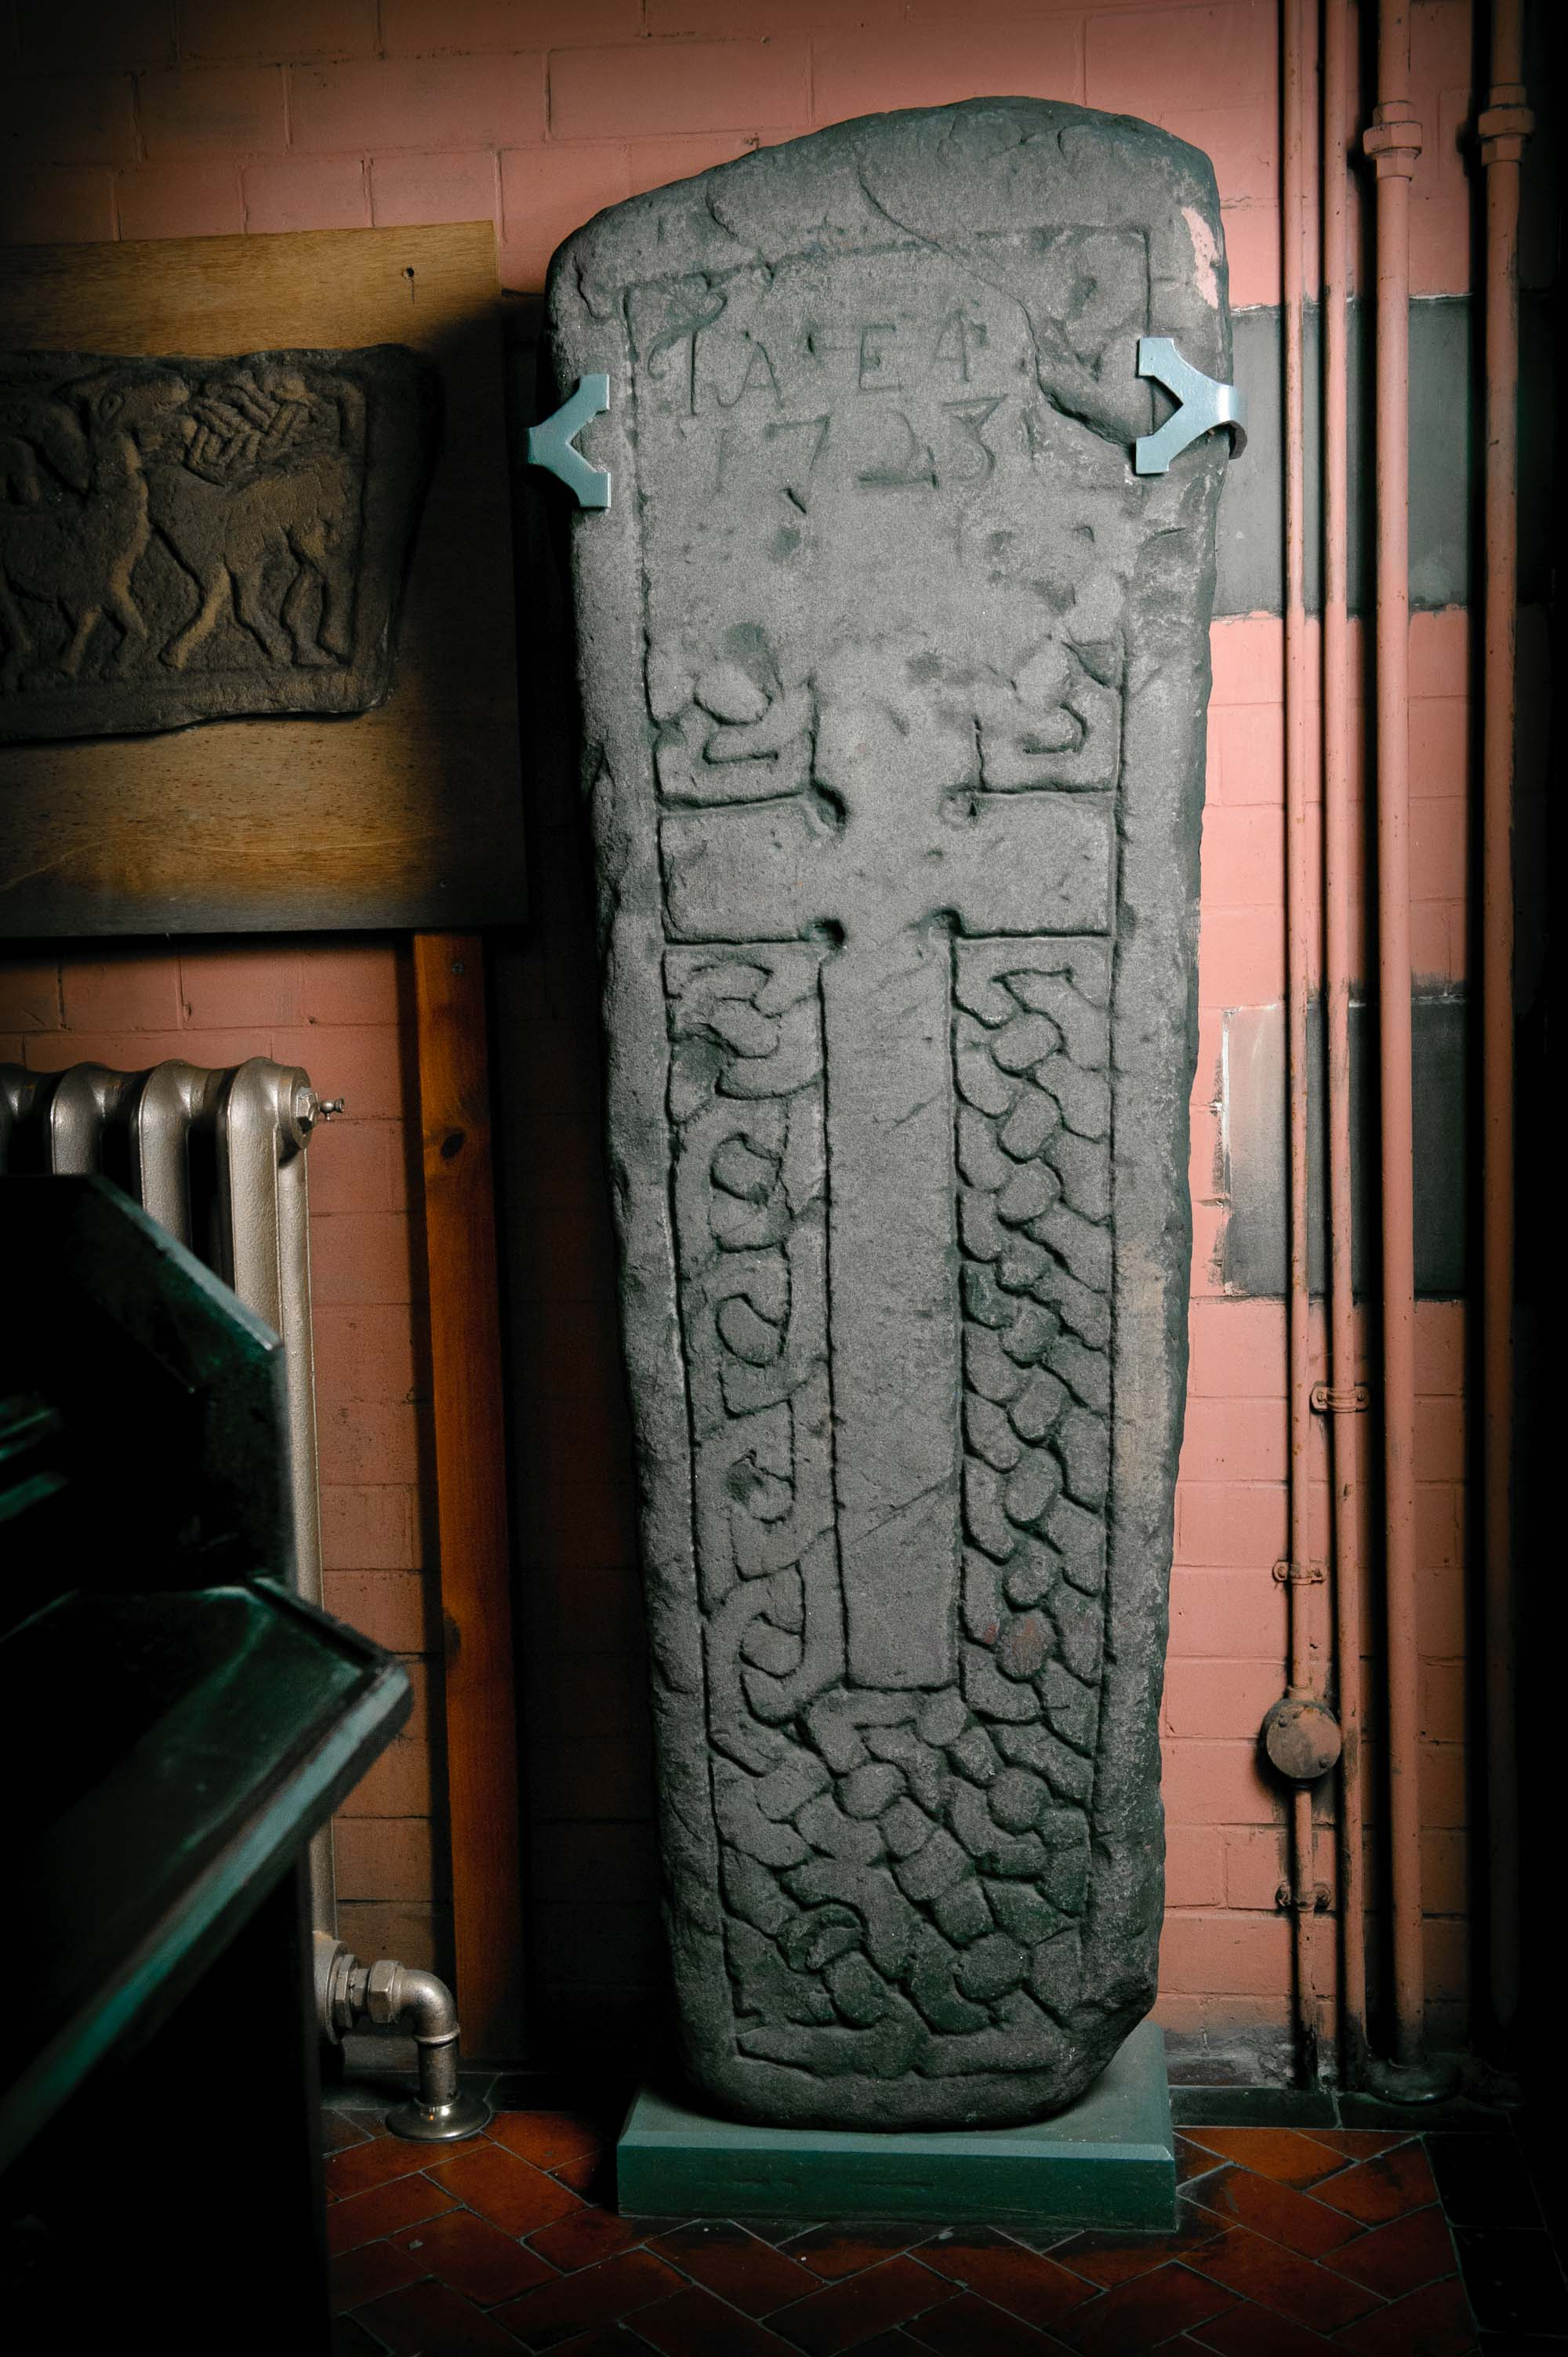 a photo of a stone slab with crucifix and Celtic decoation attached to a Church wall